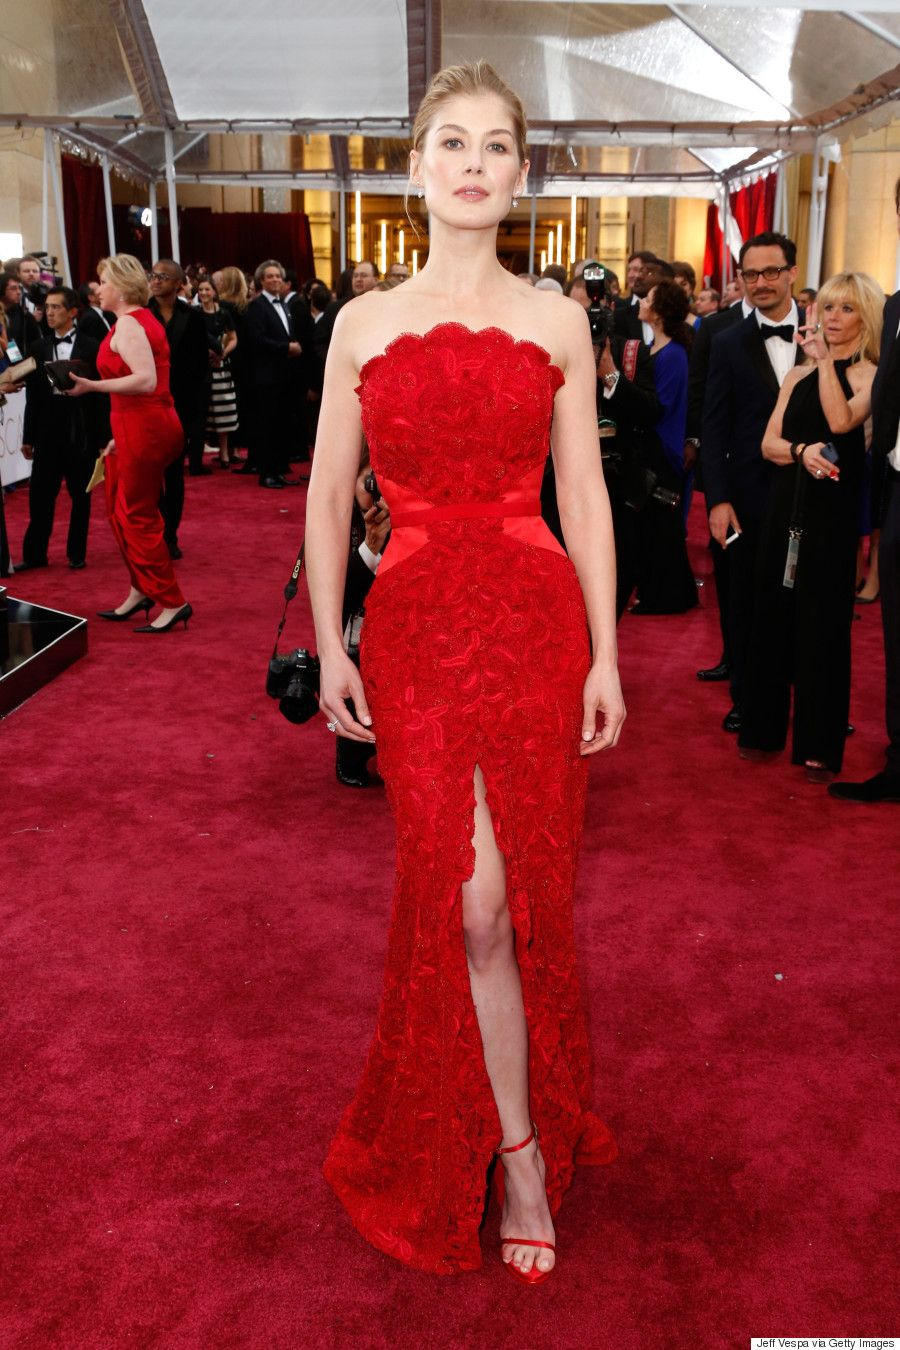 Rosamund Pikes Oscars 2015 Dress Is Unforgettable Via The Longdress Syana Maroon Huffington Post Canada Style